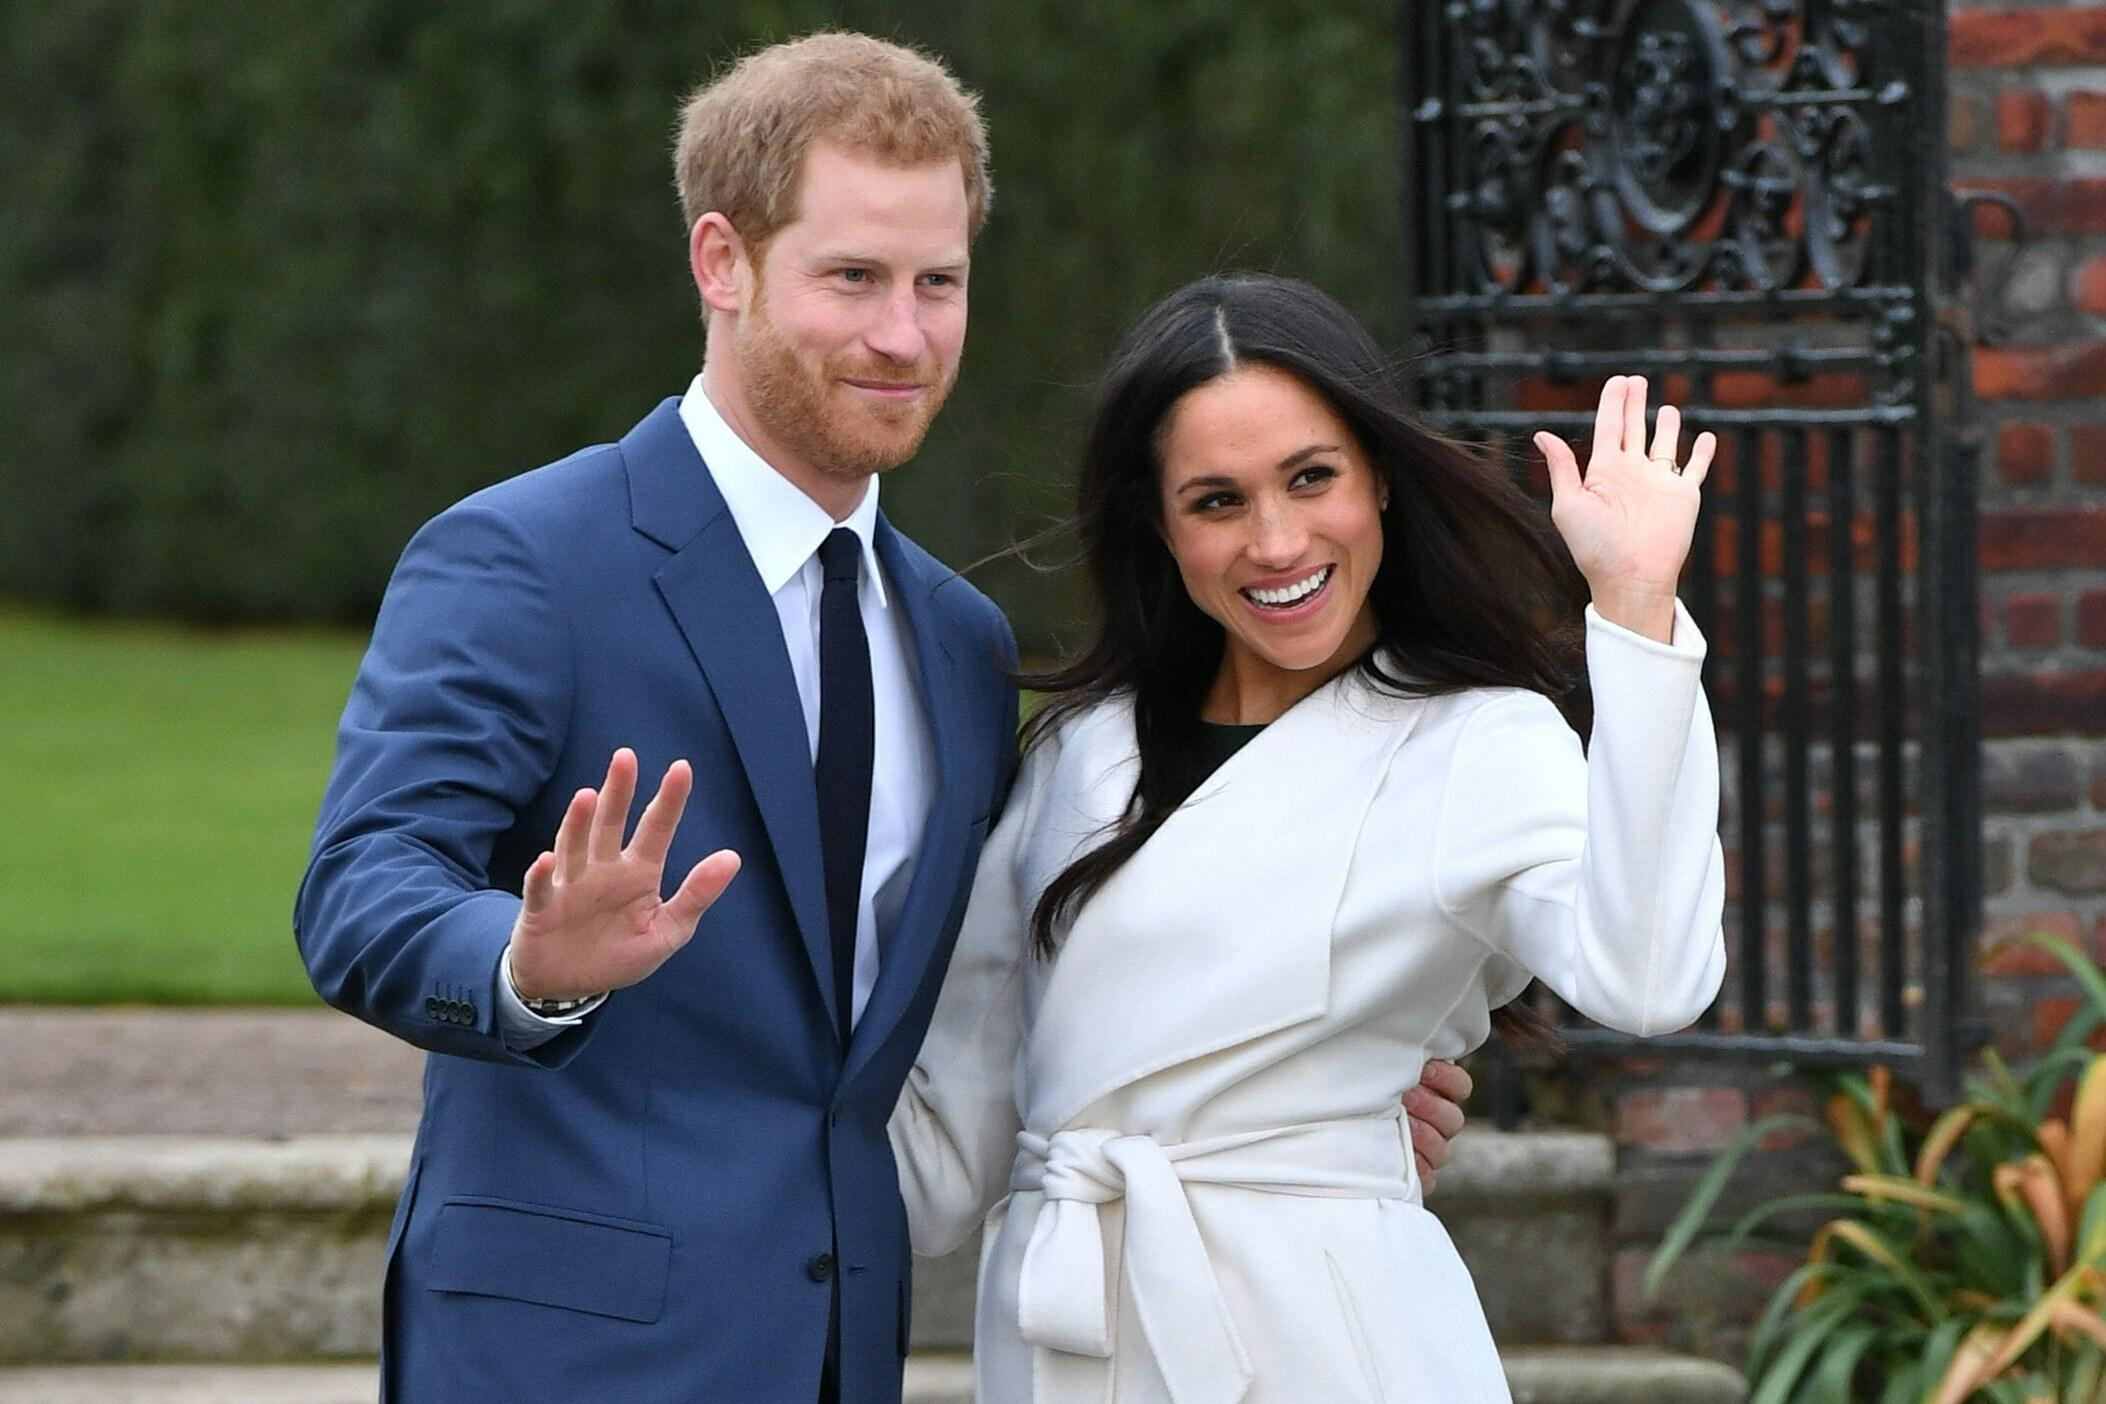 Prince Harry Wedding Date.Prince Harry Meghan Markle Set Official Wedding Date 93 7 The Bull